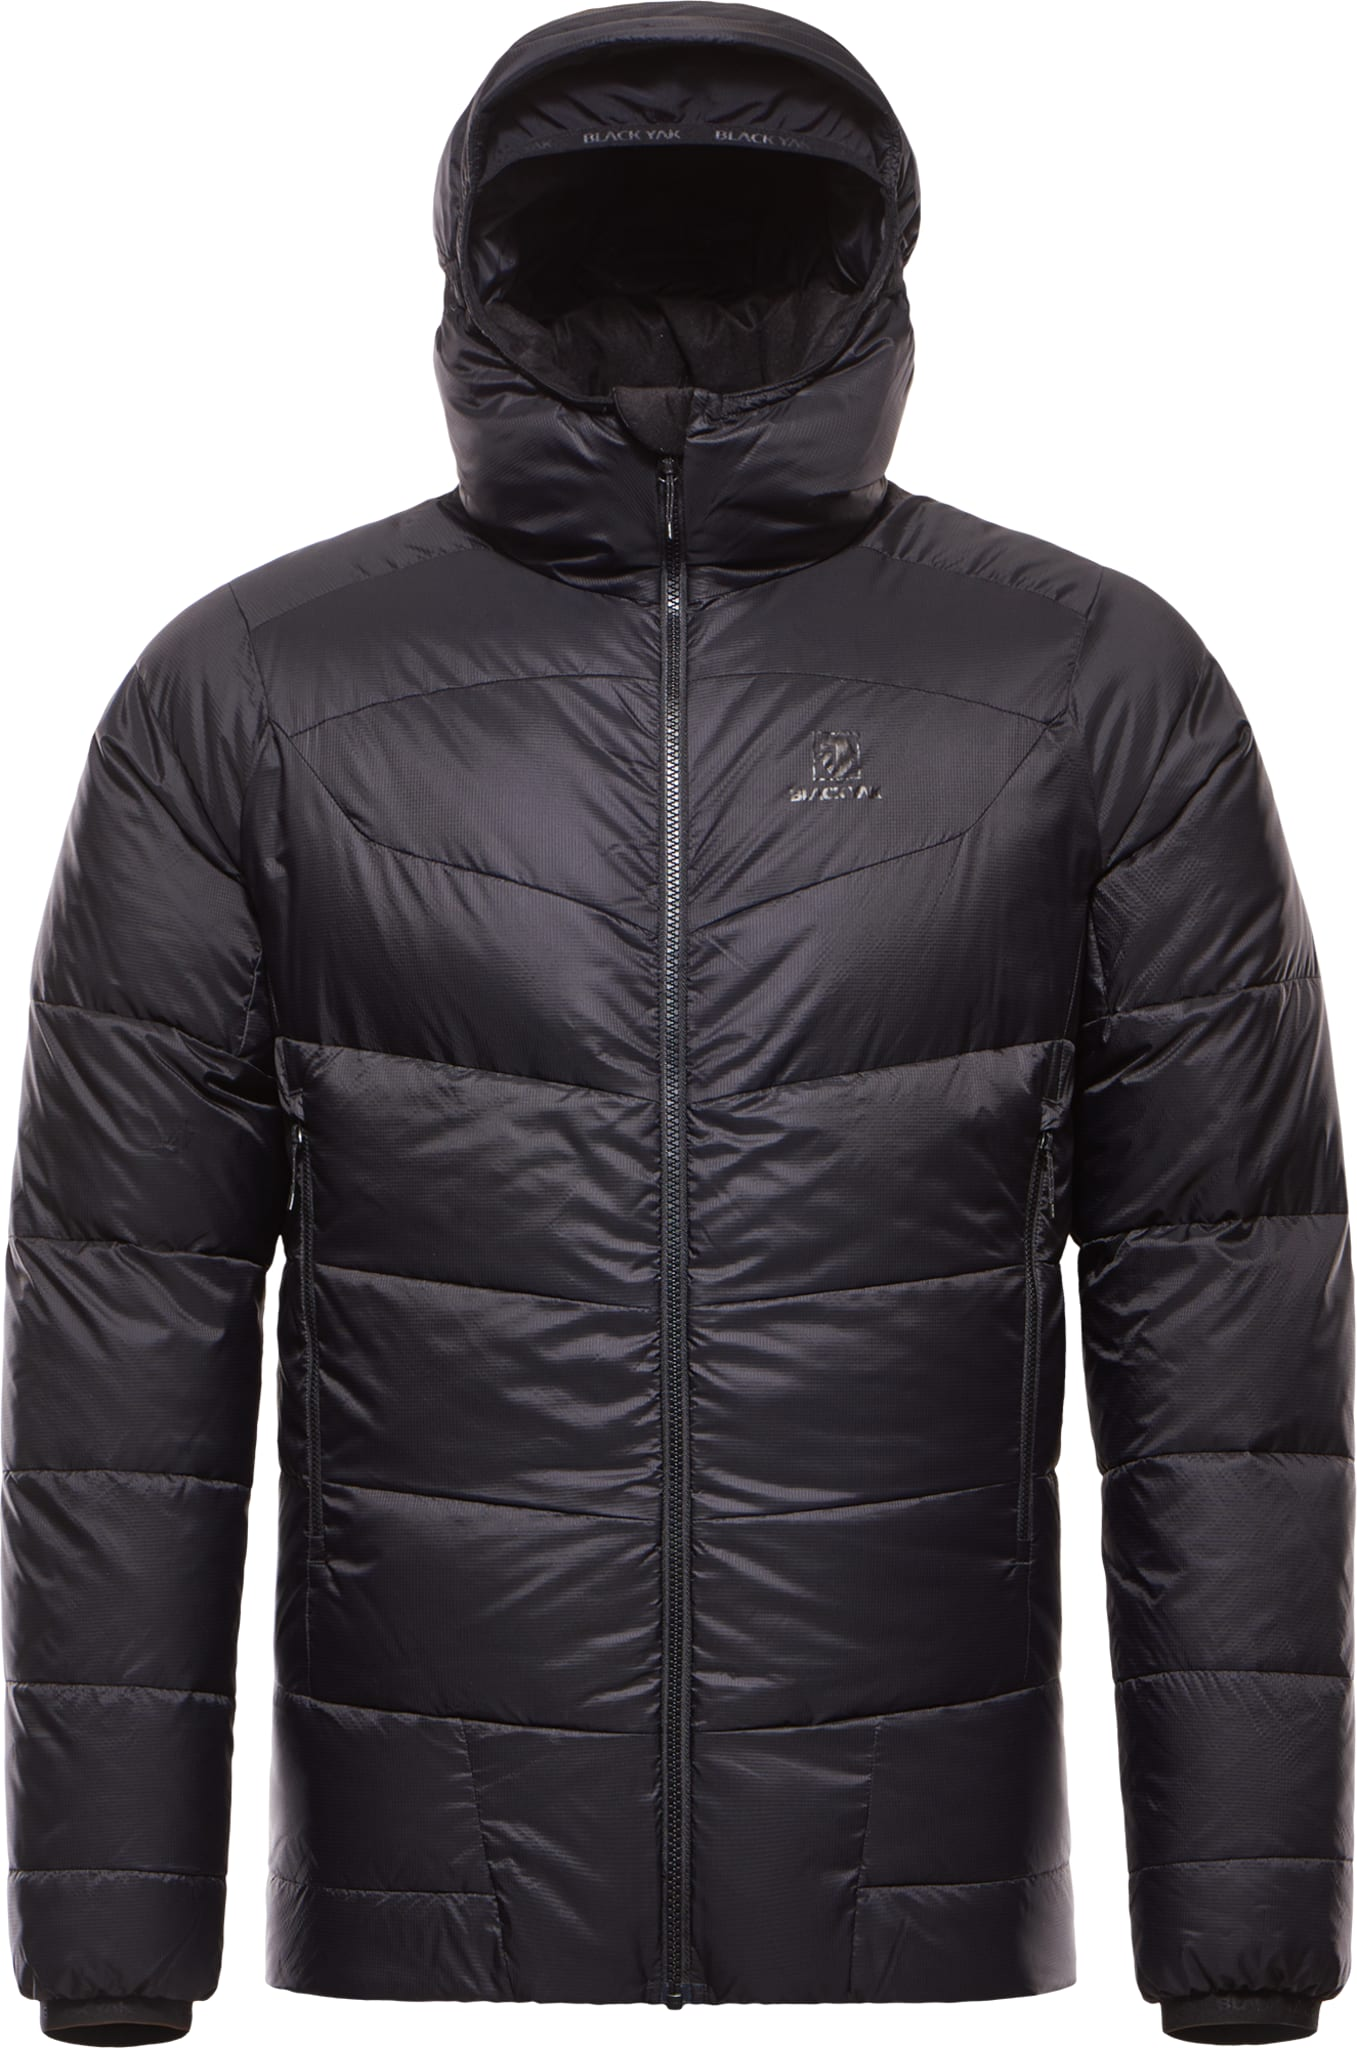 Thebe Jacket Ms